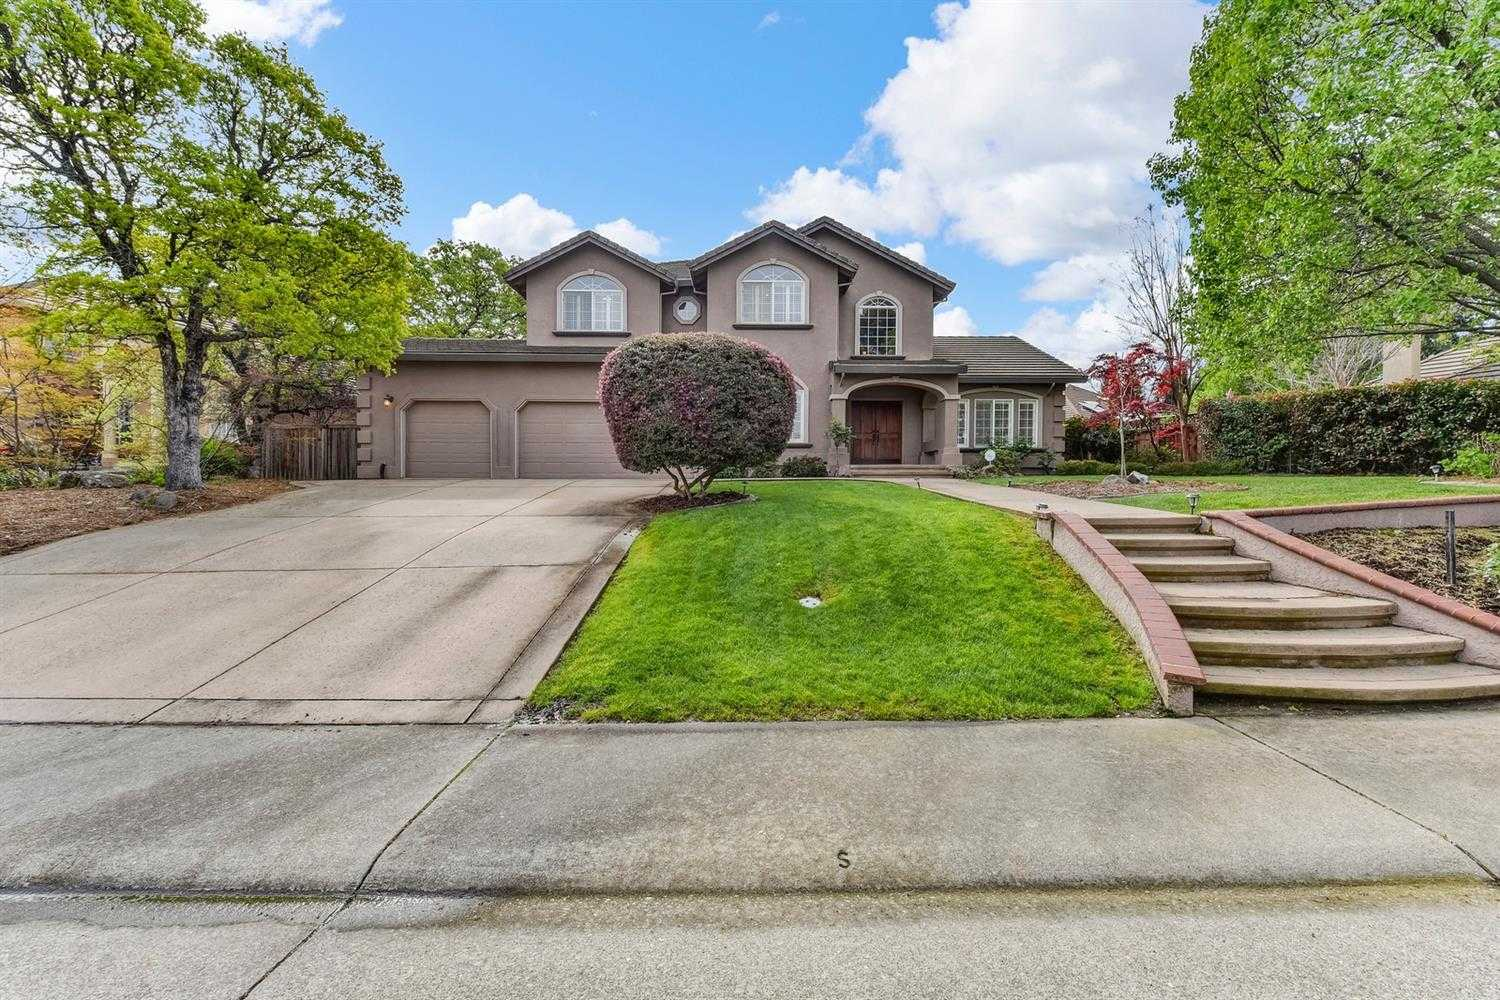 $865,000 - 5Br/3Ba -  for Sale in Folsom